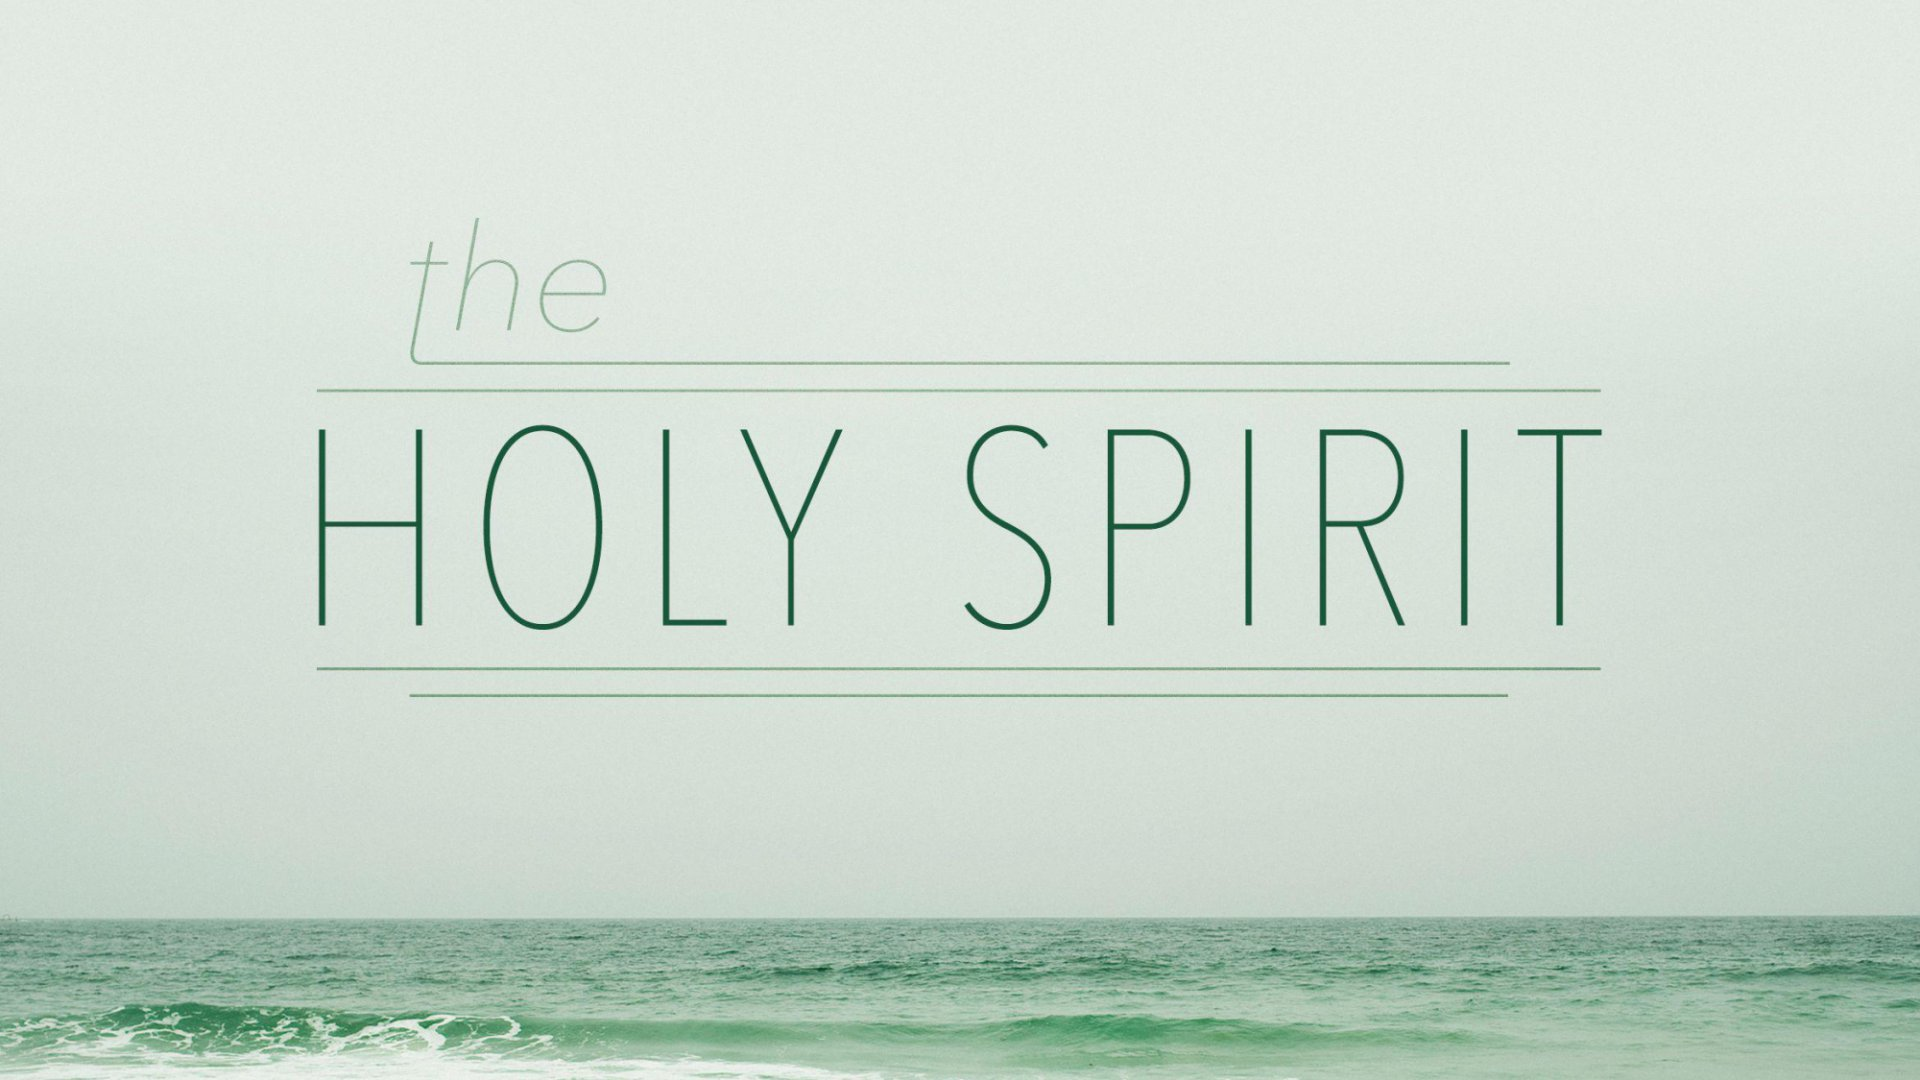 Teaching artwork for The Holy Spirit